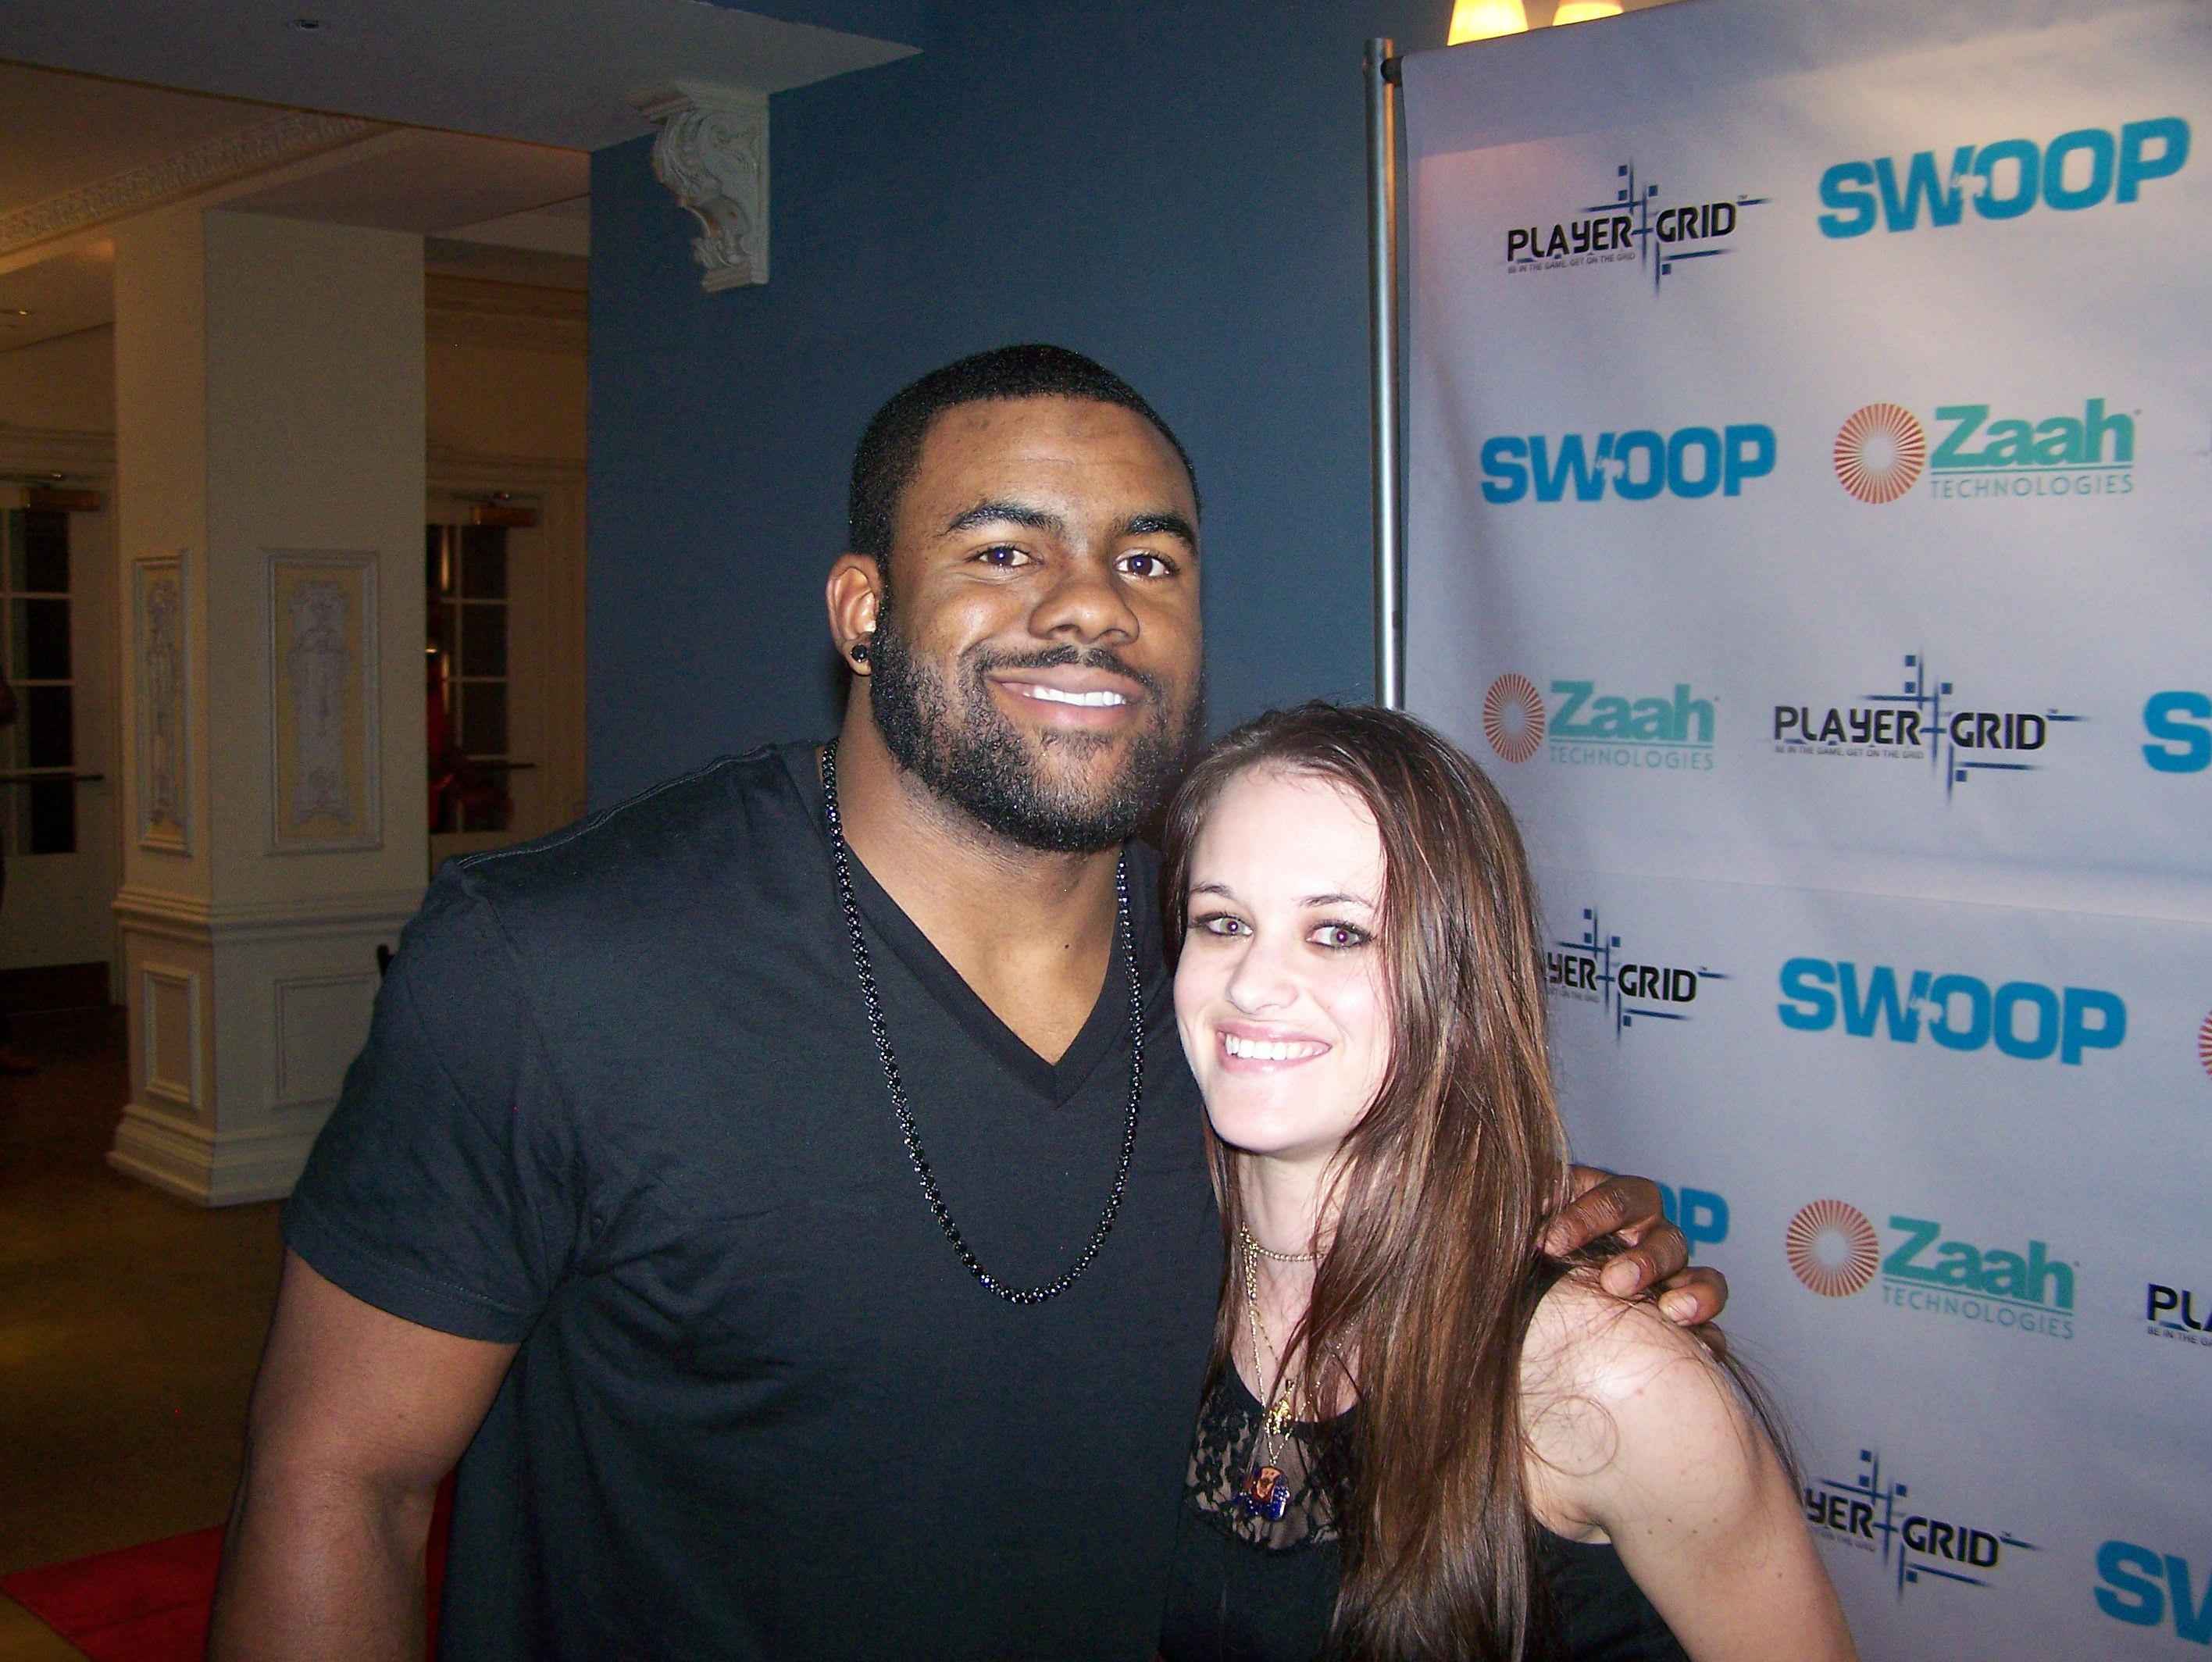 ingram dating Discussion forum for mark ingram's girlfriend does mark ingram (new orleans saints, nfl) have a girlfriend is he dating someone is he married single divorced.